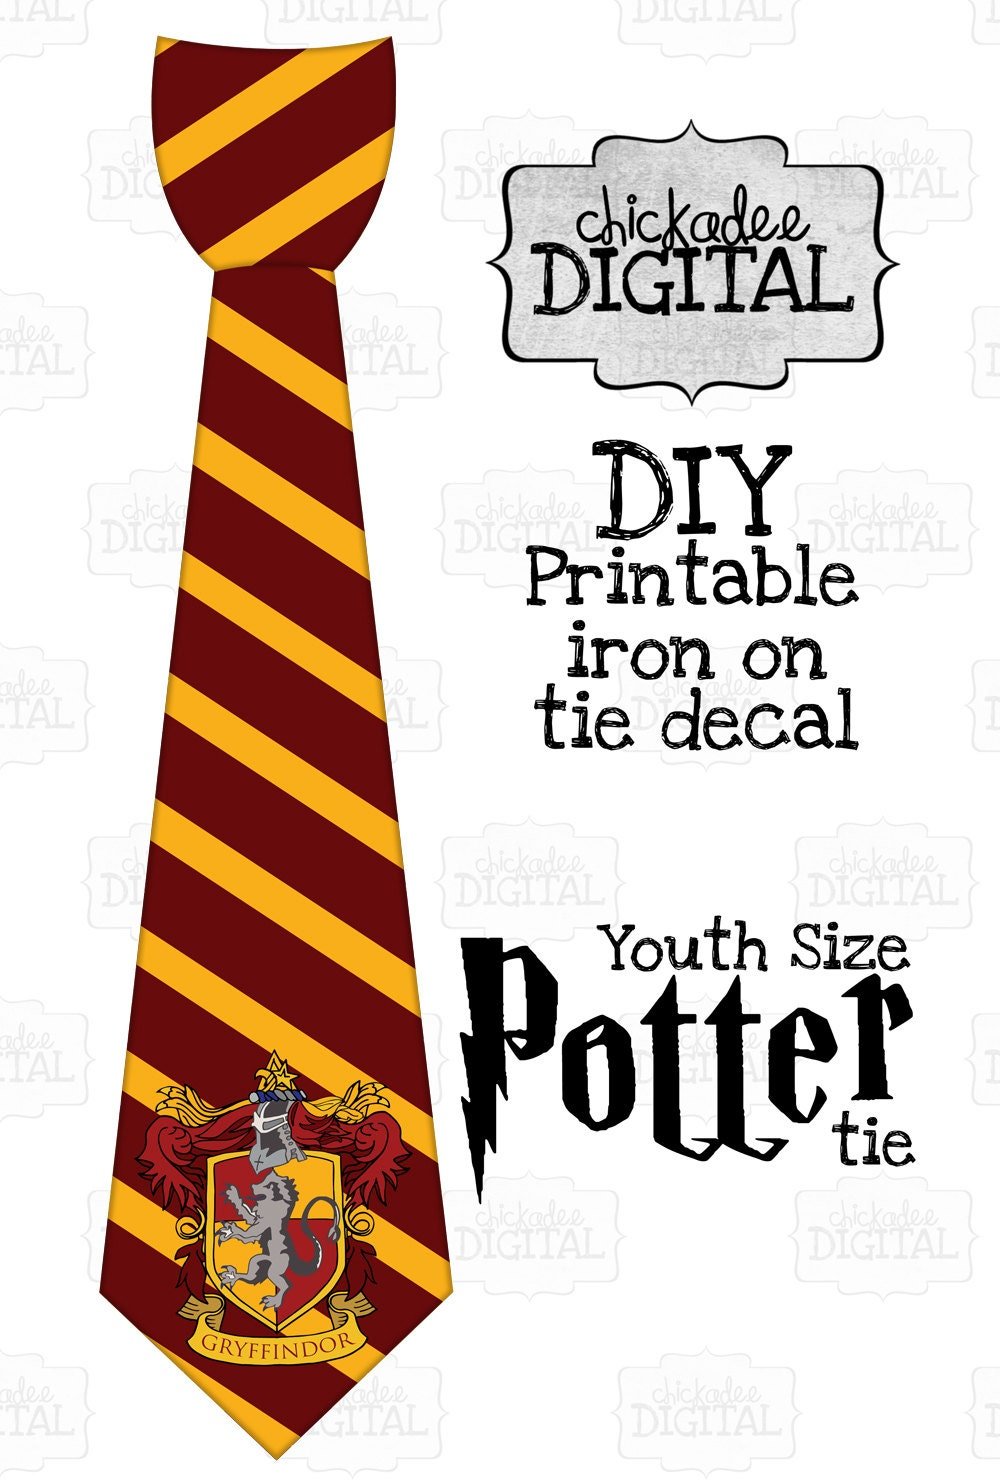 It's just a photo of Critical Harry Potter Tie Printable